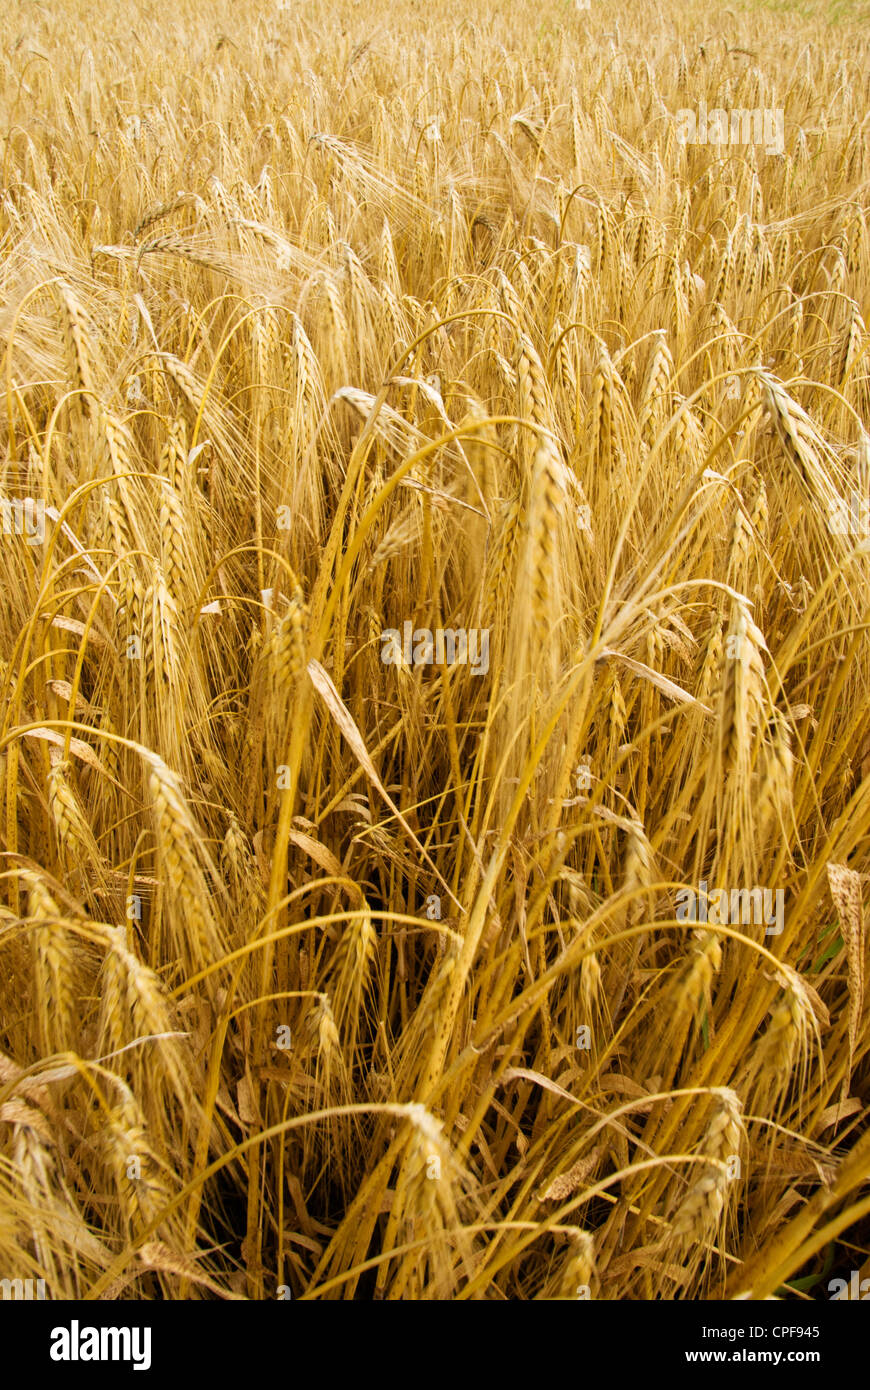 field of grain - Stock Image